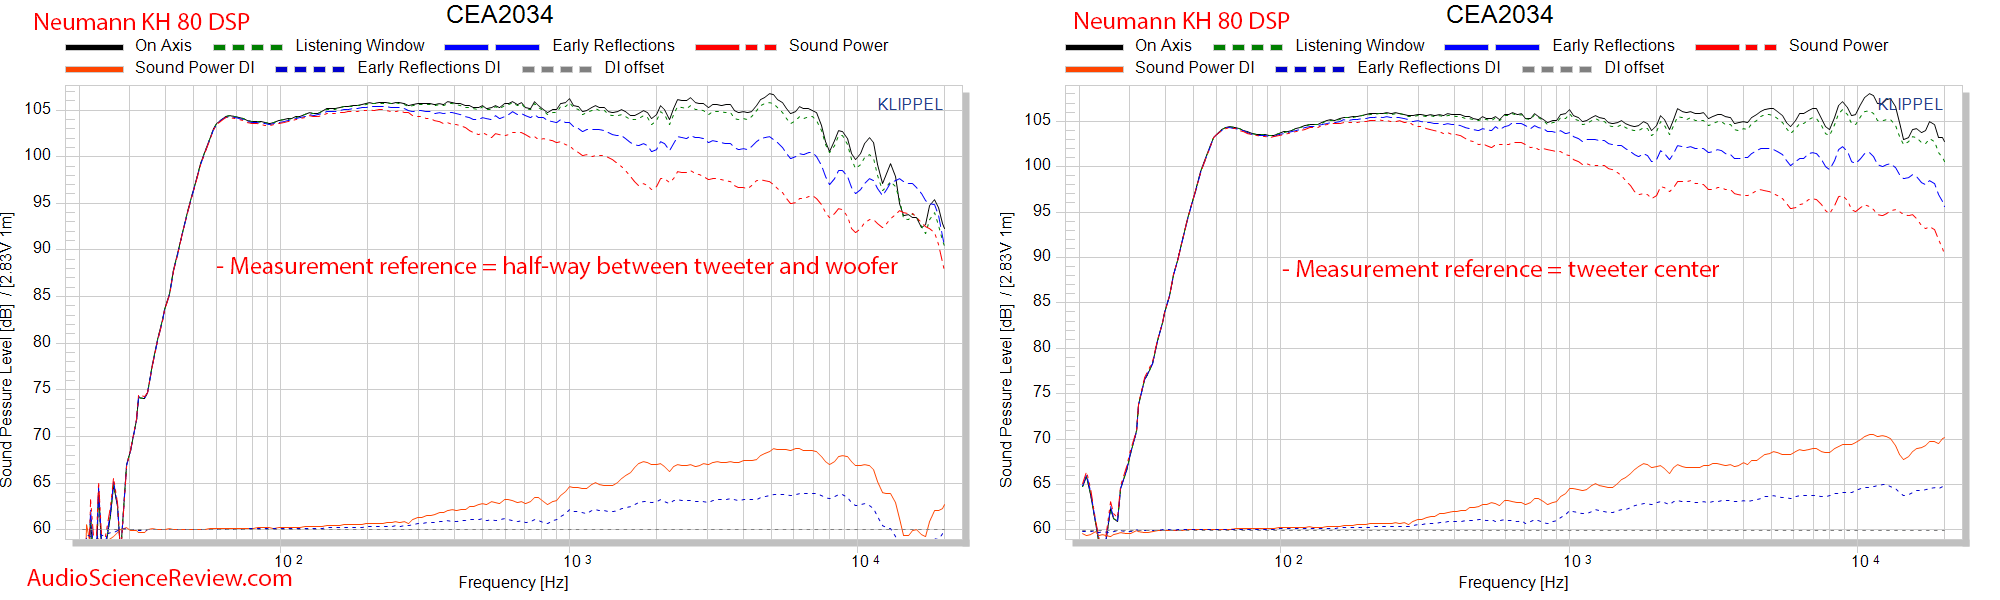 Neumann KH 80 DSP Monitor Active Studio Pro Speaker Compared to Acoustic Center Measurements.png